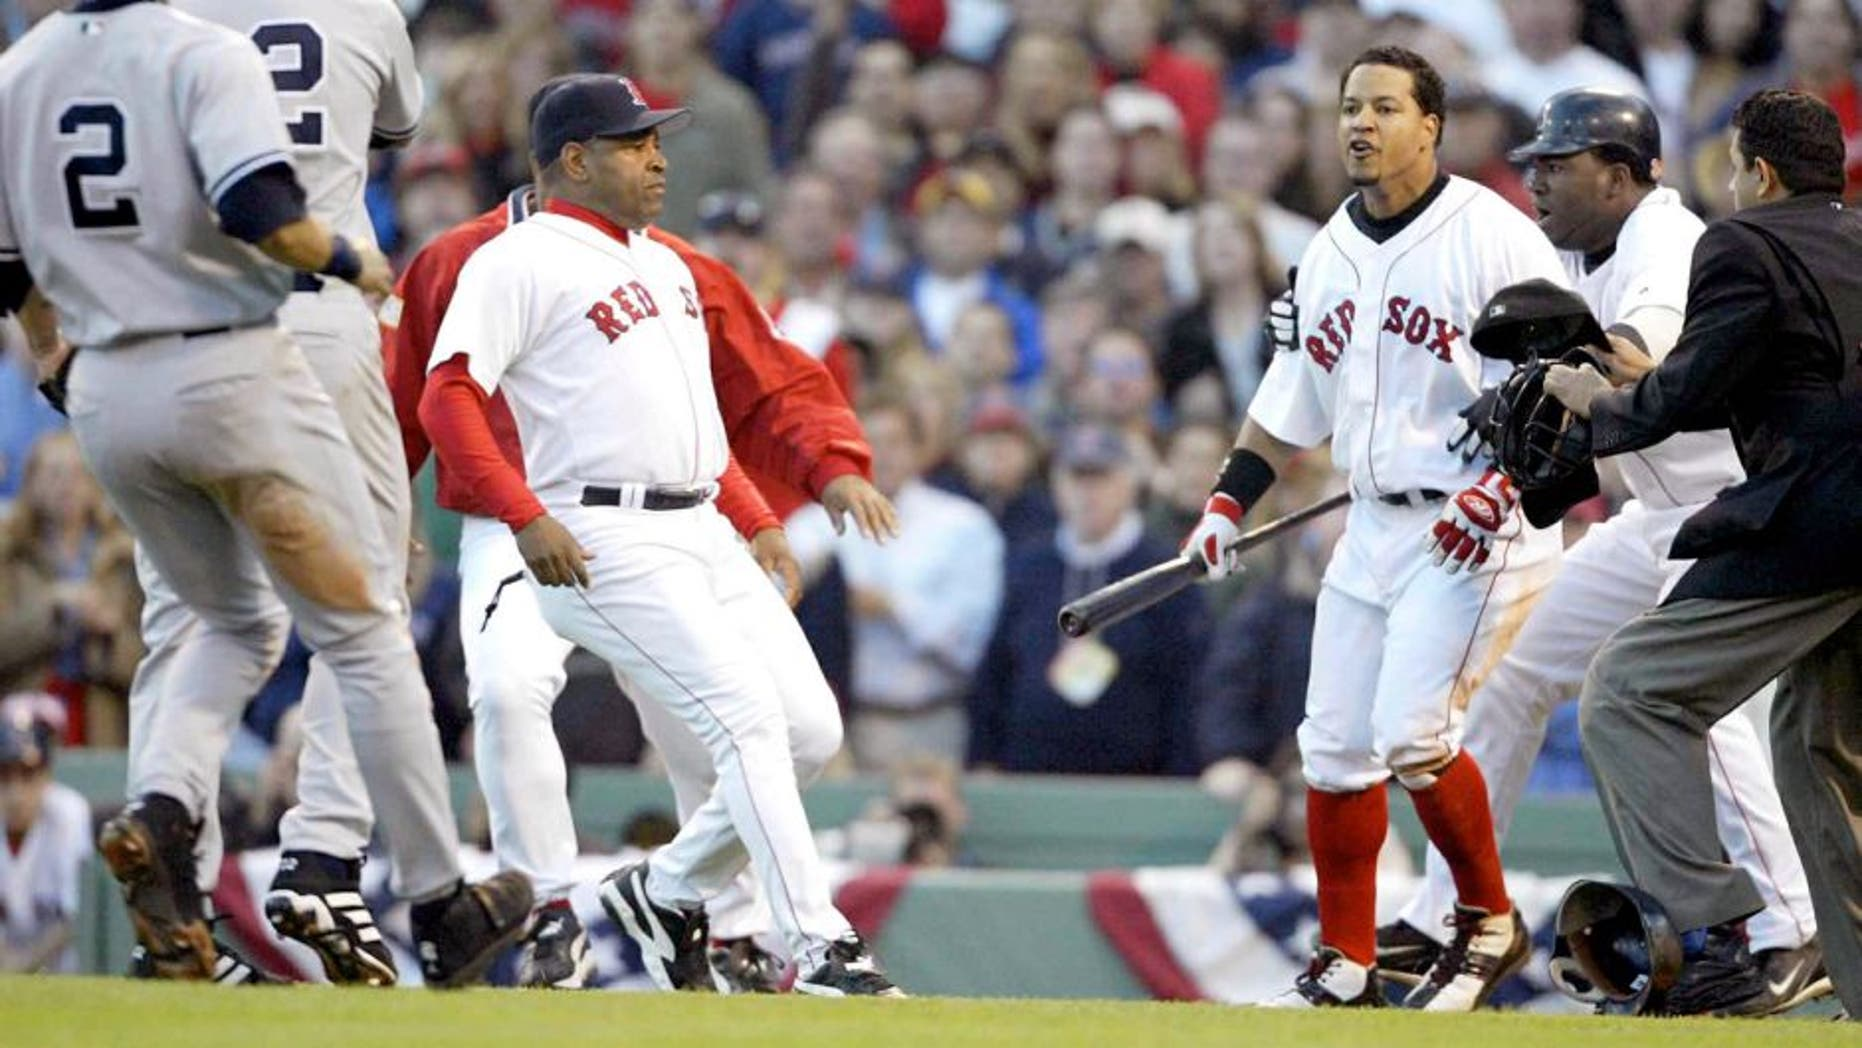 BOSTON - OCTOBER 11: Manny Ramirez #24 of the Boston Red Sox reacts after a pitch by Roger Clemens #22 of the New York Yankees during the fourth inning of Game 3 of the 2003 American League Championship Series on October 11, 2003 at Fenway Park in Boston, Massachusettes. (Photo by Jed Jacobsohn/Getty Images)